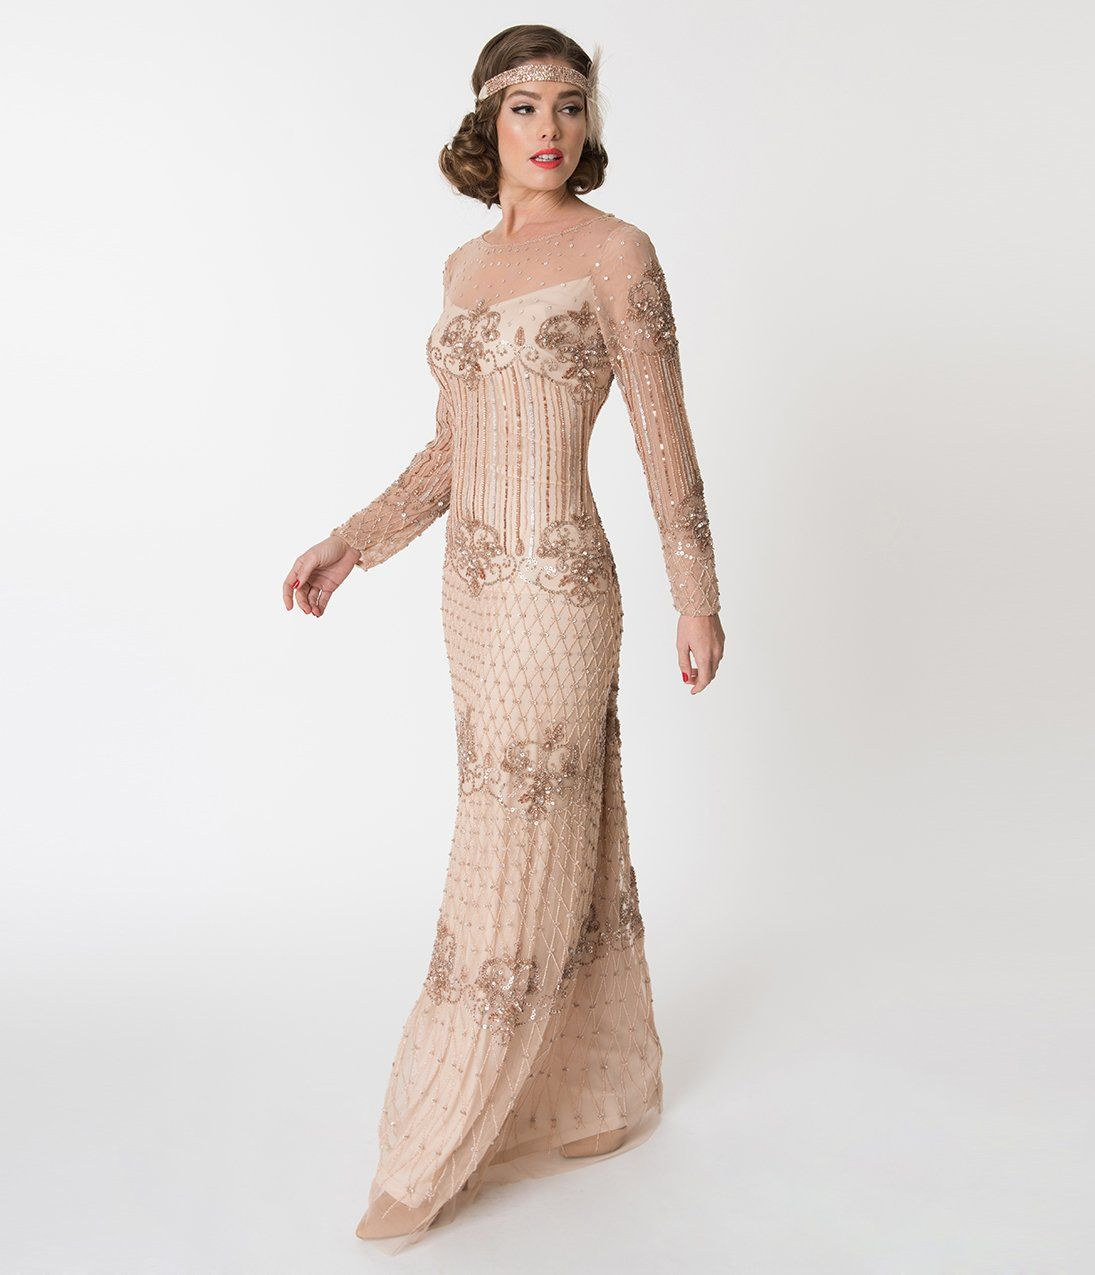 e48c31dc98 1920s Party Dresses, Great Gatsby Gowns, Prom Dresses Blush Pink Embellished  Mesh Long Sleeve Dolores Flapper Dress $218.00 AT vintagedancer.com